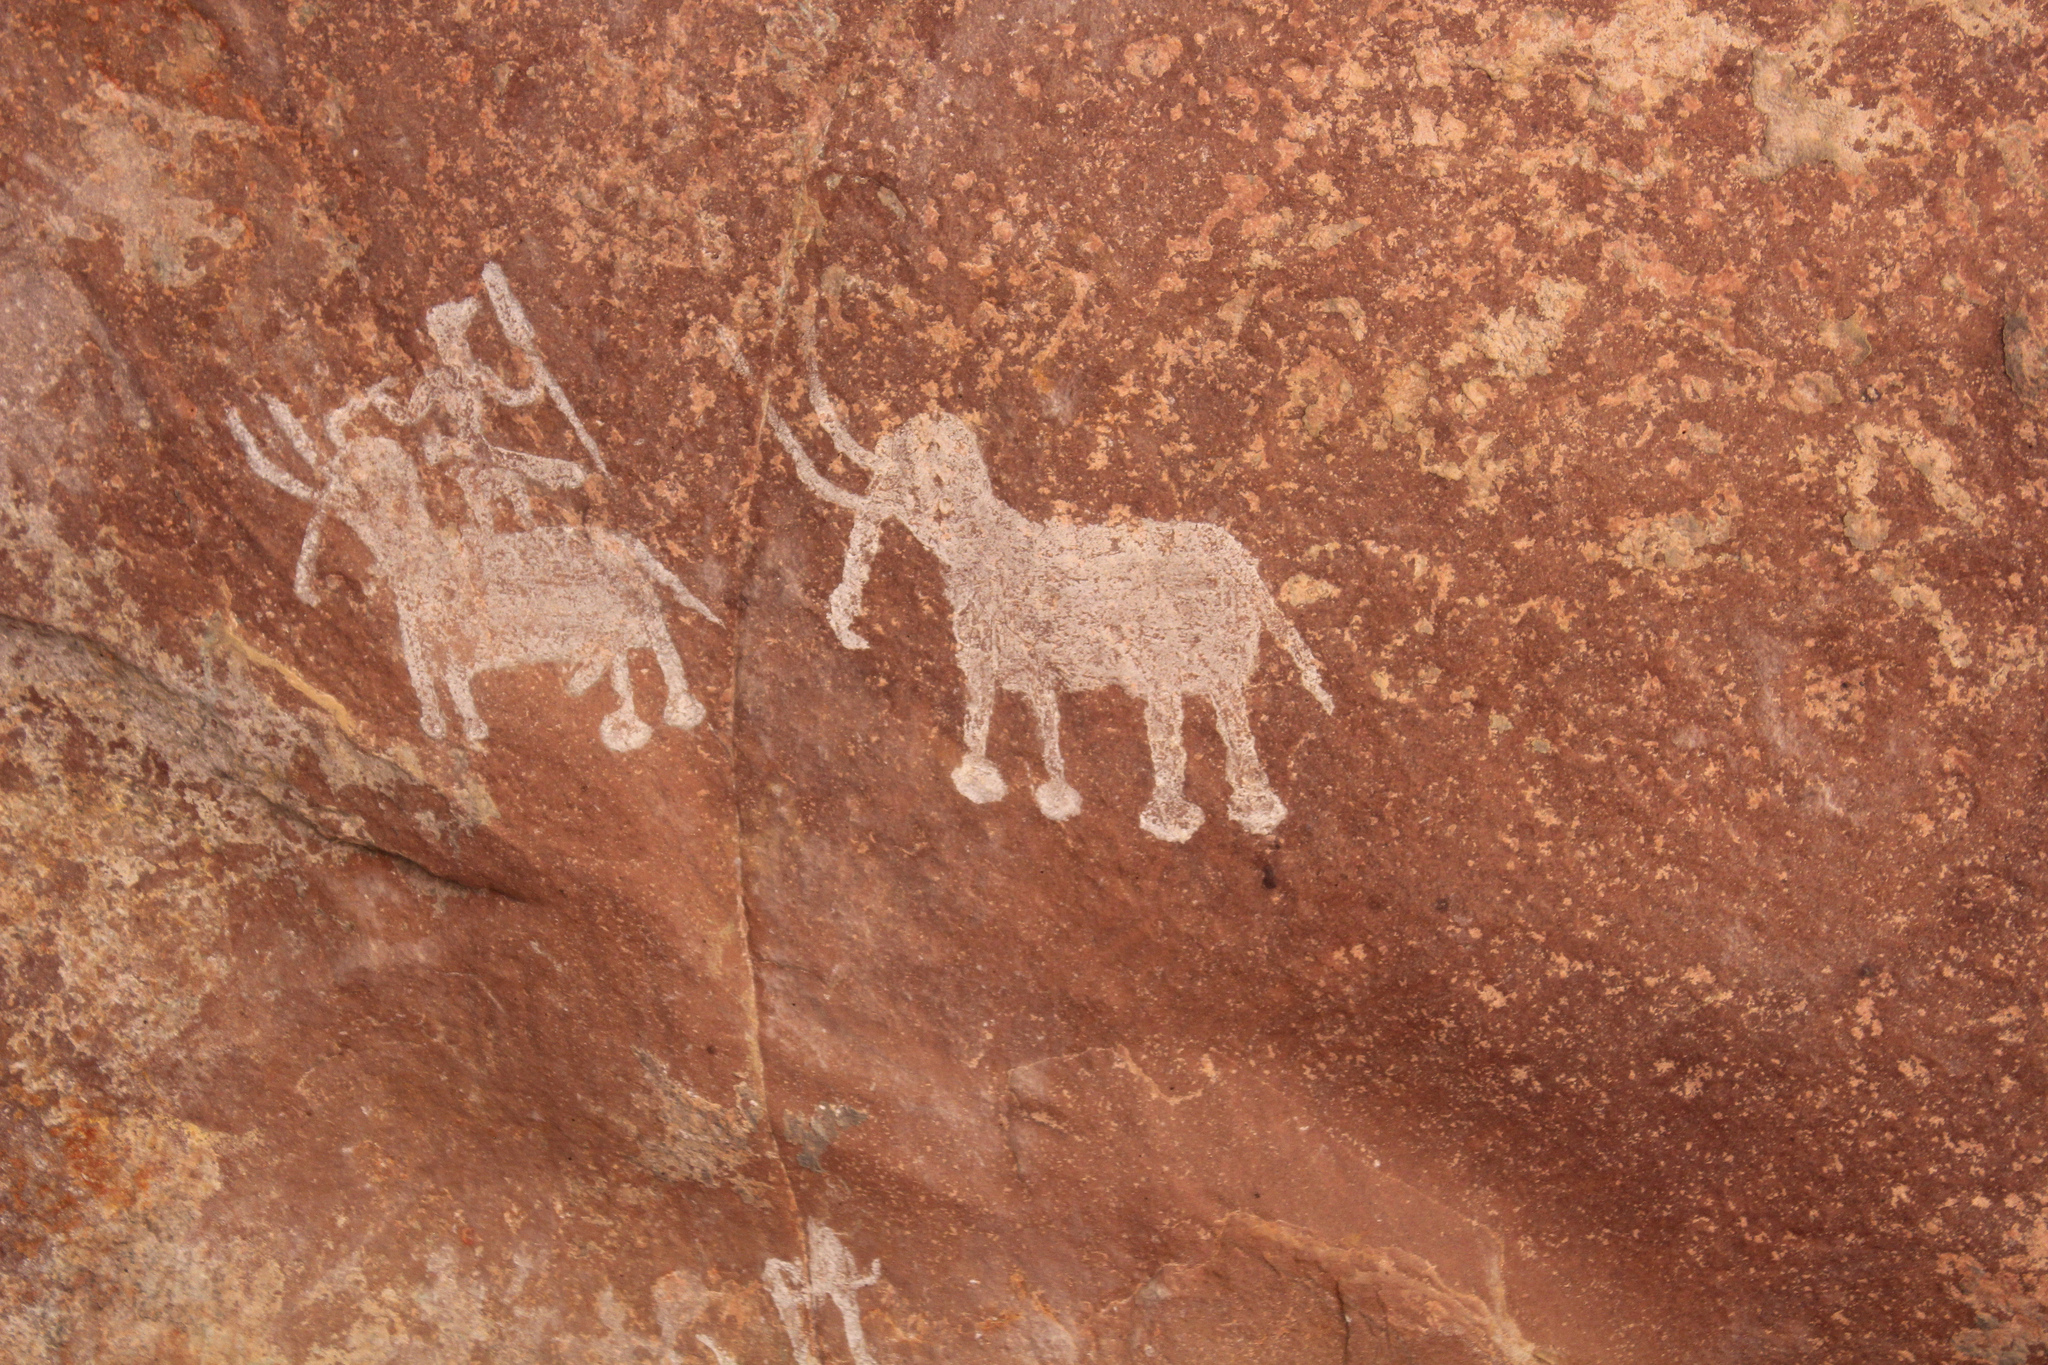 Bhimbetka Rock Shelters India S Oldest Human Art